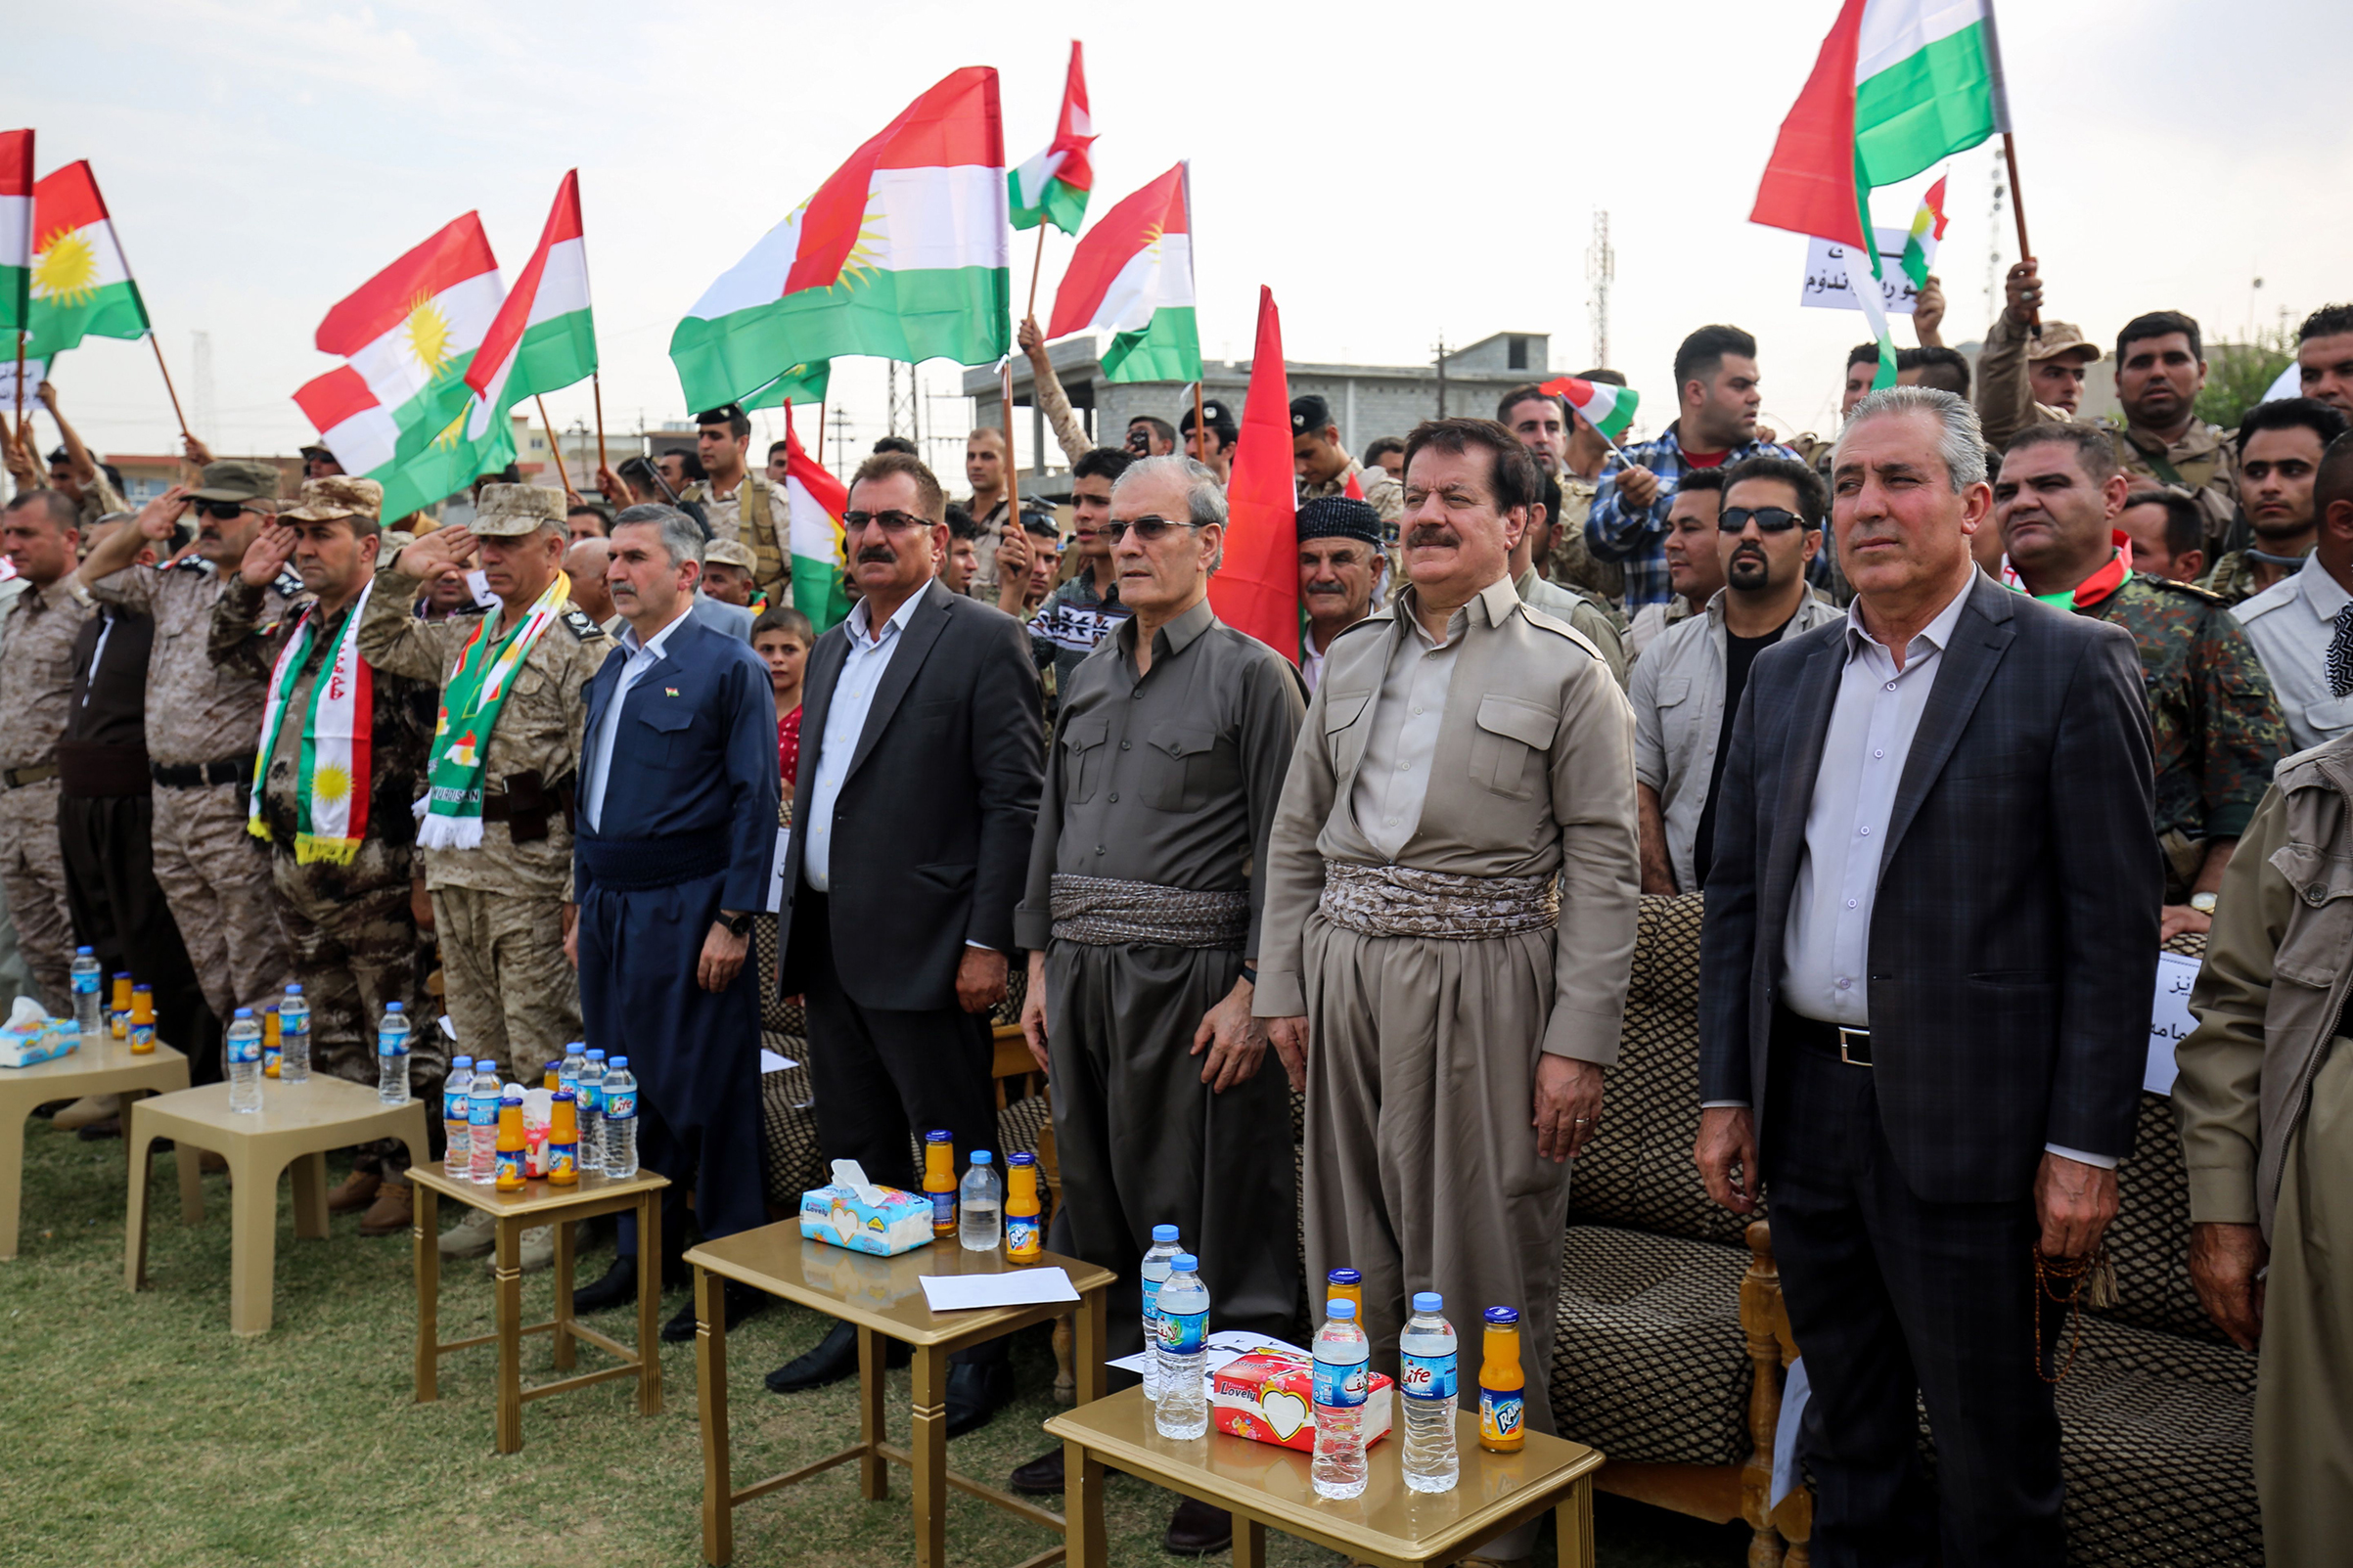 Kirkuk's provincial governor Najim al-Din Karim third from right, who was recently sacked by the Iraqi parliament, attends a rally in support of the upcoming independence referendum in Kirkuk on Sept. 19, 2017